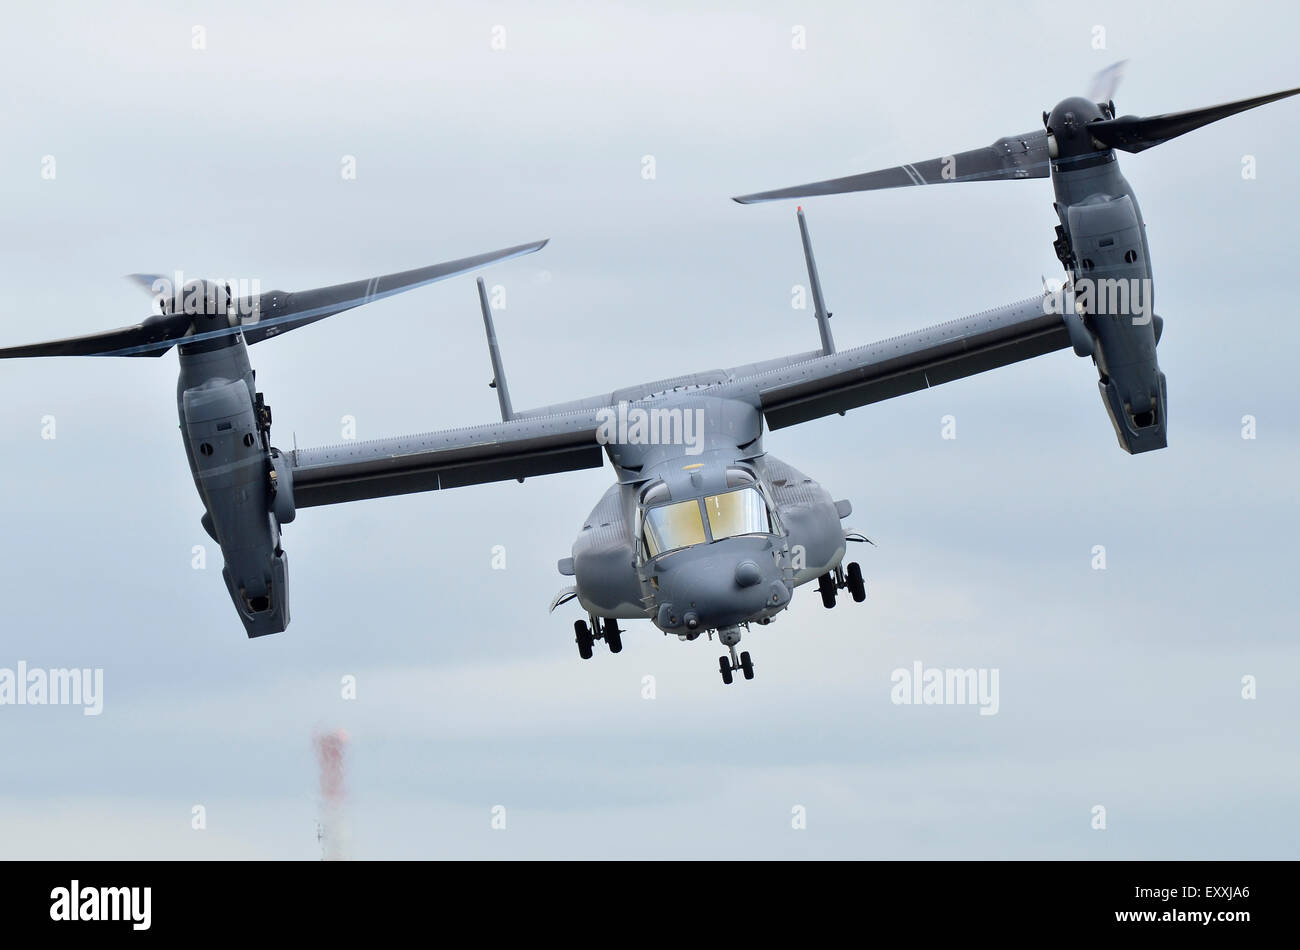 Bell Boeing CV-22B Osprey operated by the US Air Force displaying at RIAT 2015, Fairford, UK. Credit:  Antony Nettle/Alamy - Stock Image